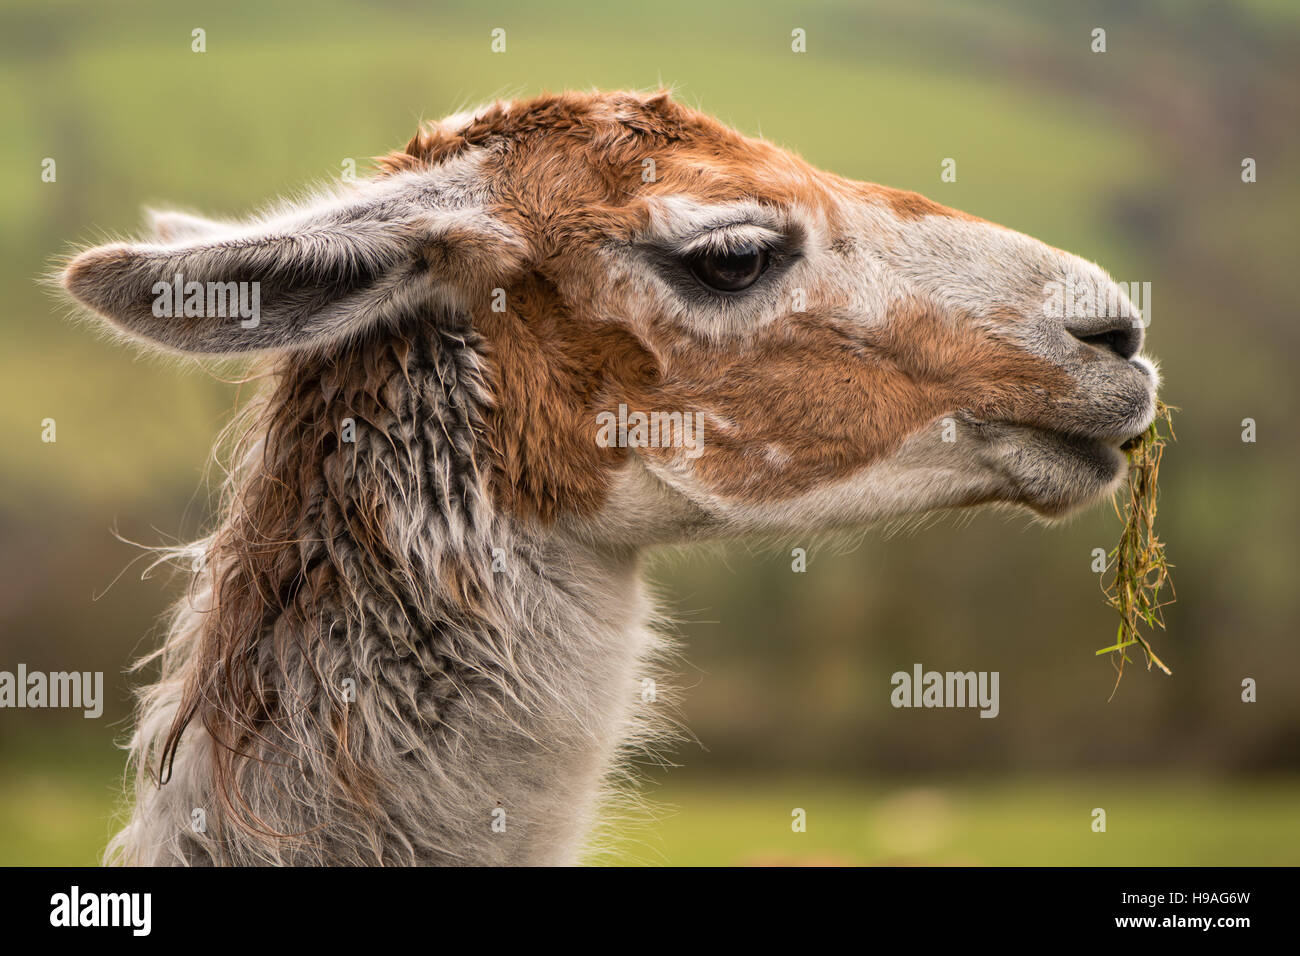 Llama head with grass hanging from mouth. Brown and white camelid in profile chewing grass with matted hair - Stock Image